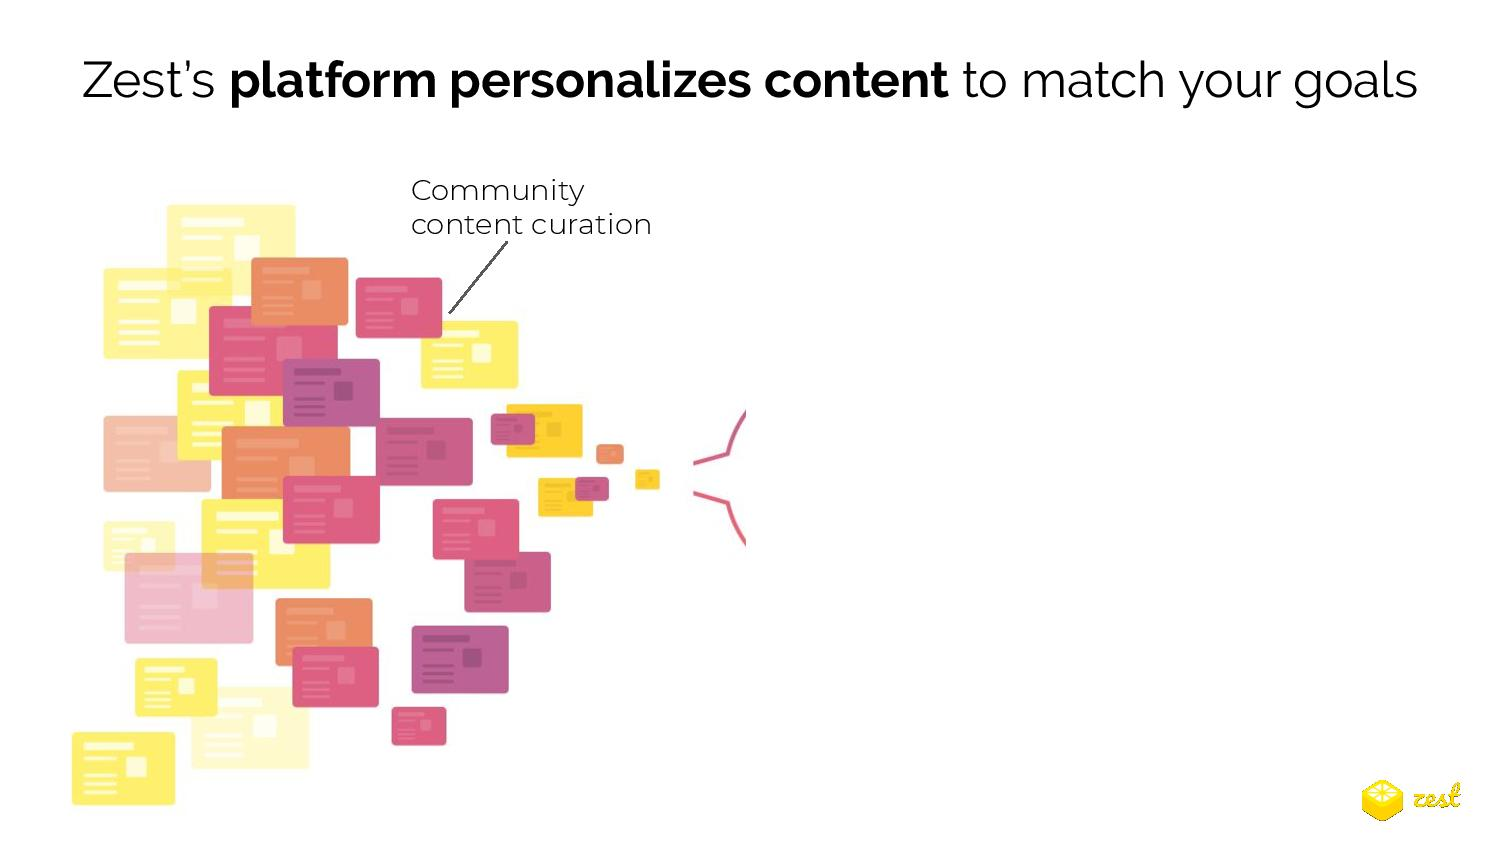 Zest's platform personalizes content to match your goals beginning with community content curation.